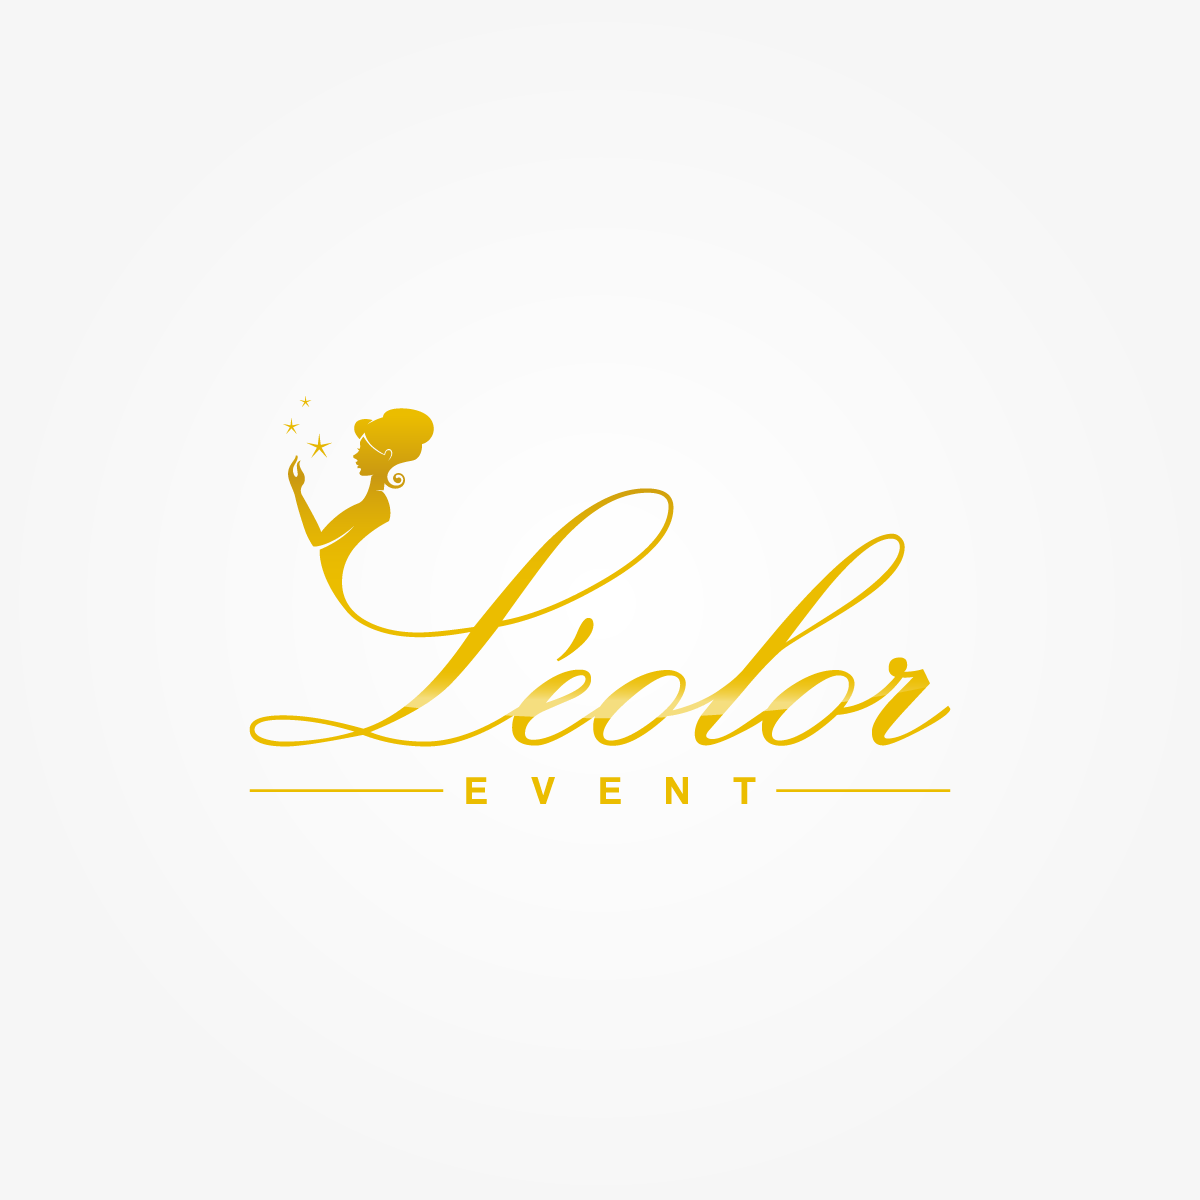 leolor-event-logo